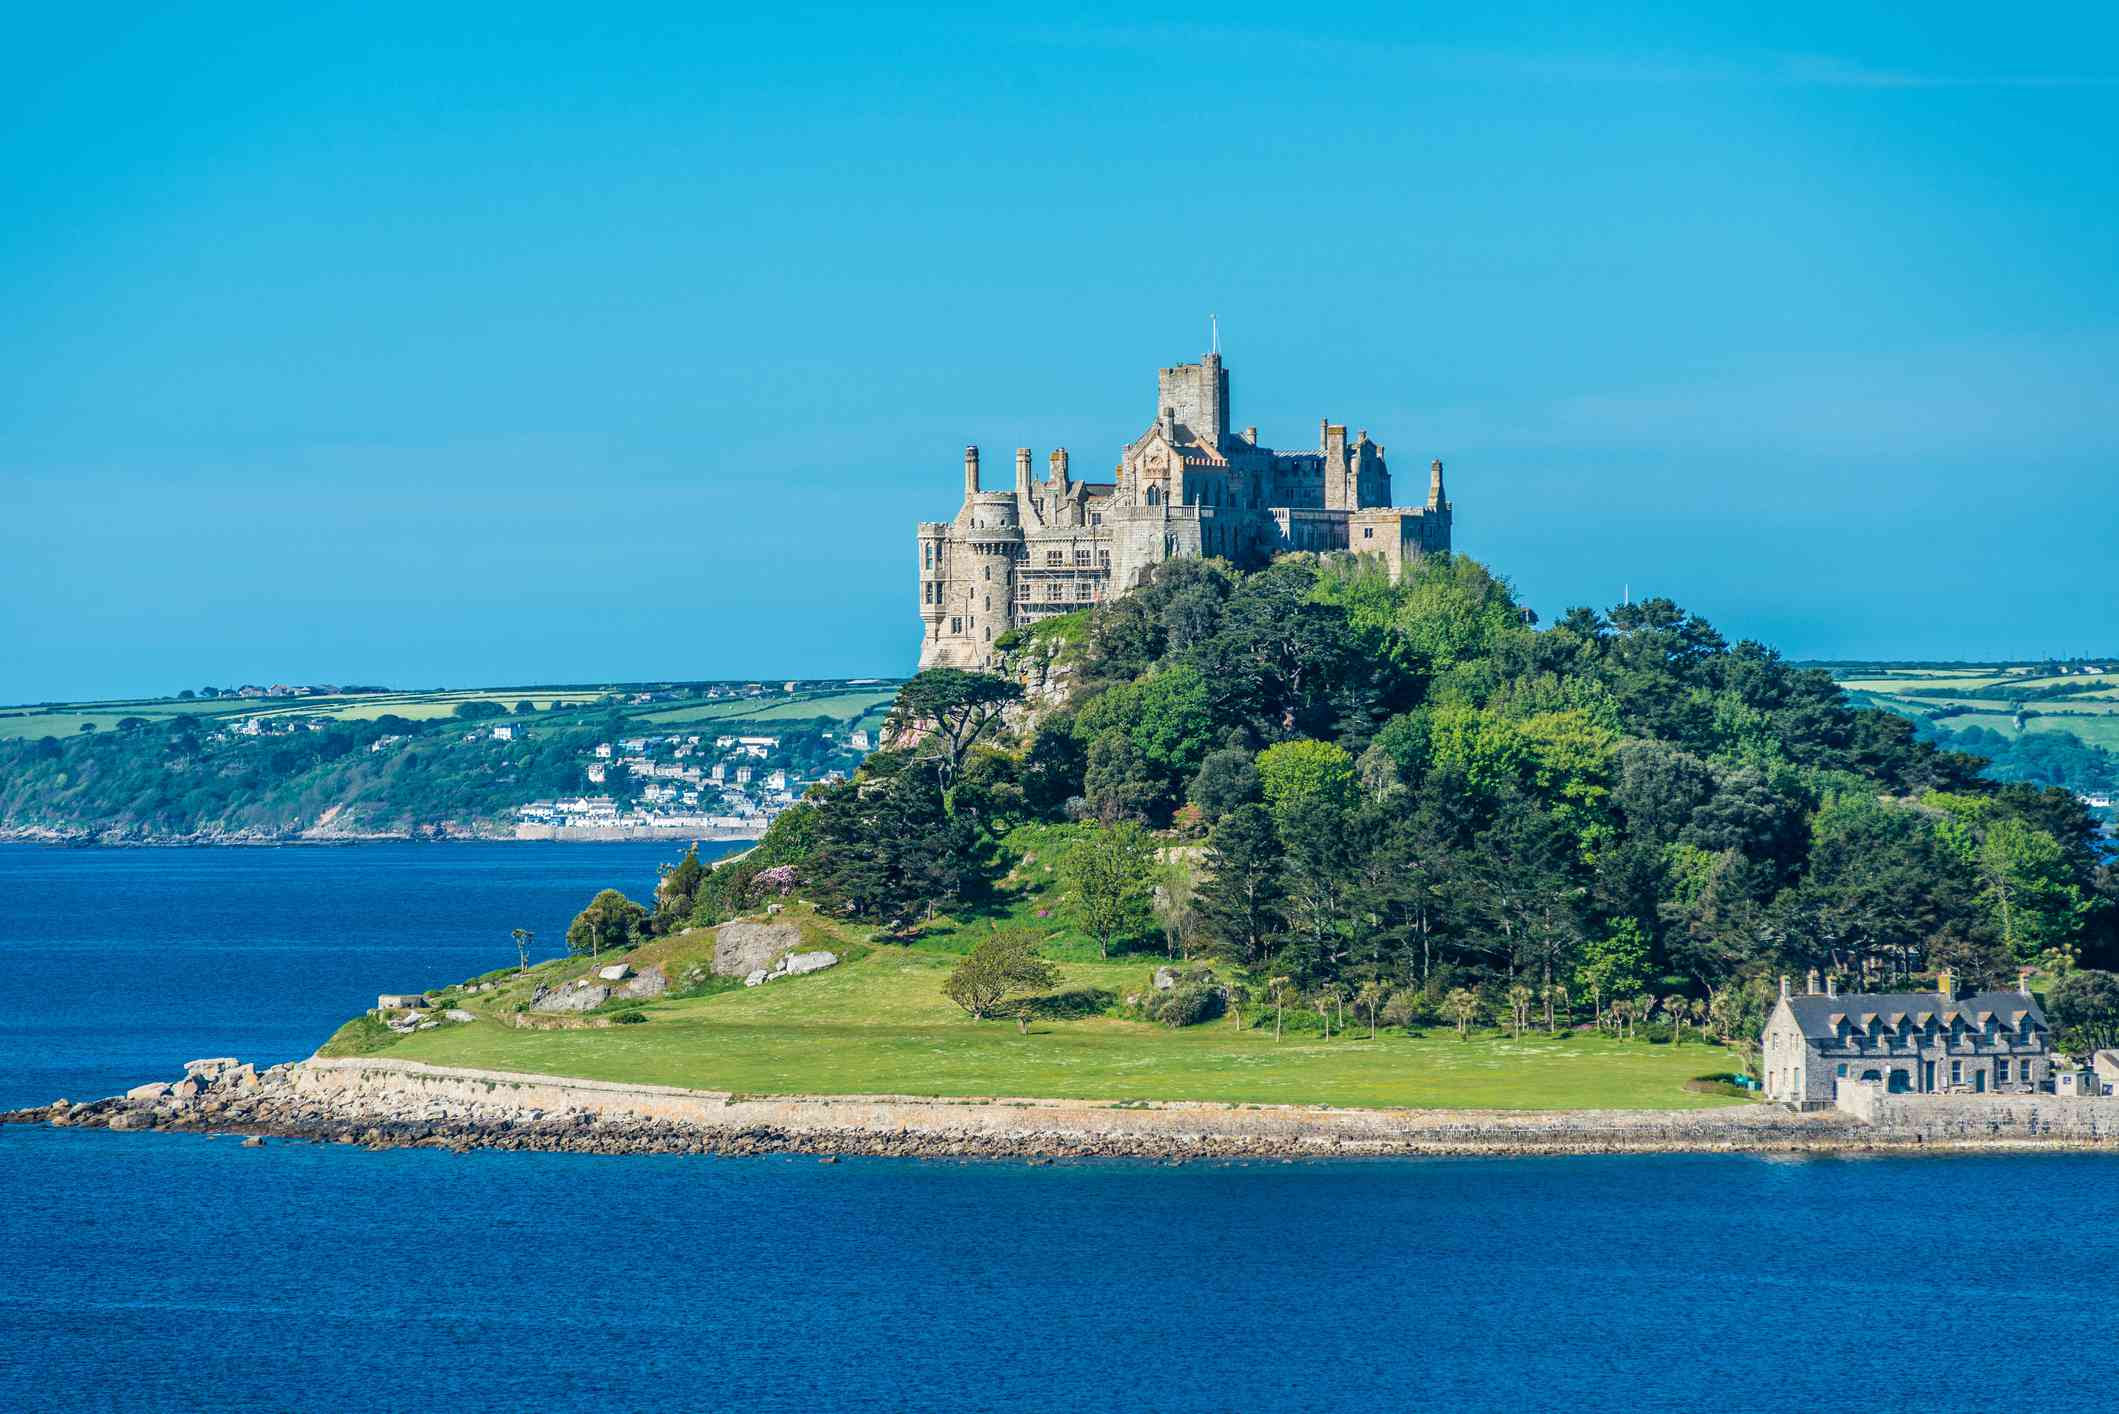 St. Michael's Mount, an elevated castle surrounded by lush green trees and water under a clear blue sky